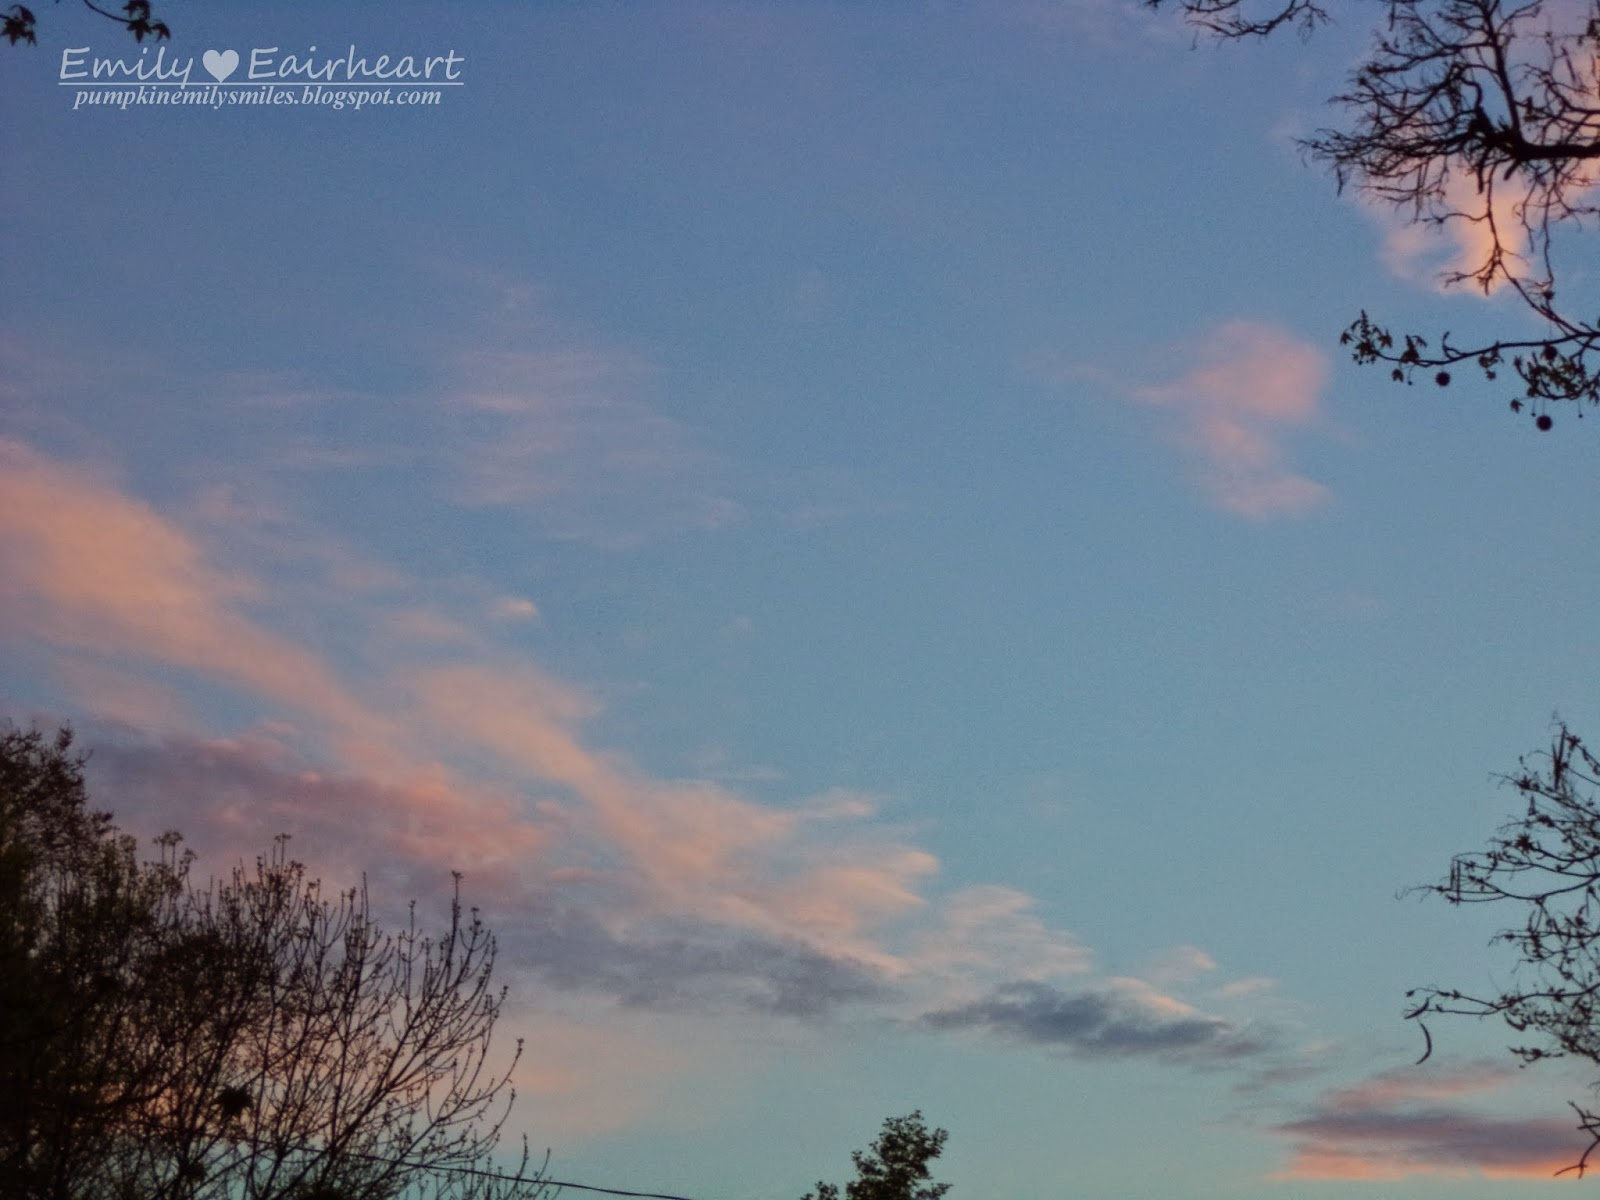 Pink and dark purple clouds. In the lower right there is cloud shape of a fox running.